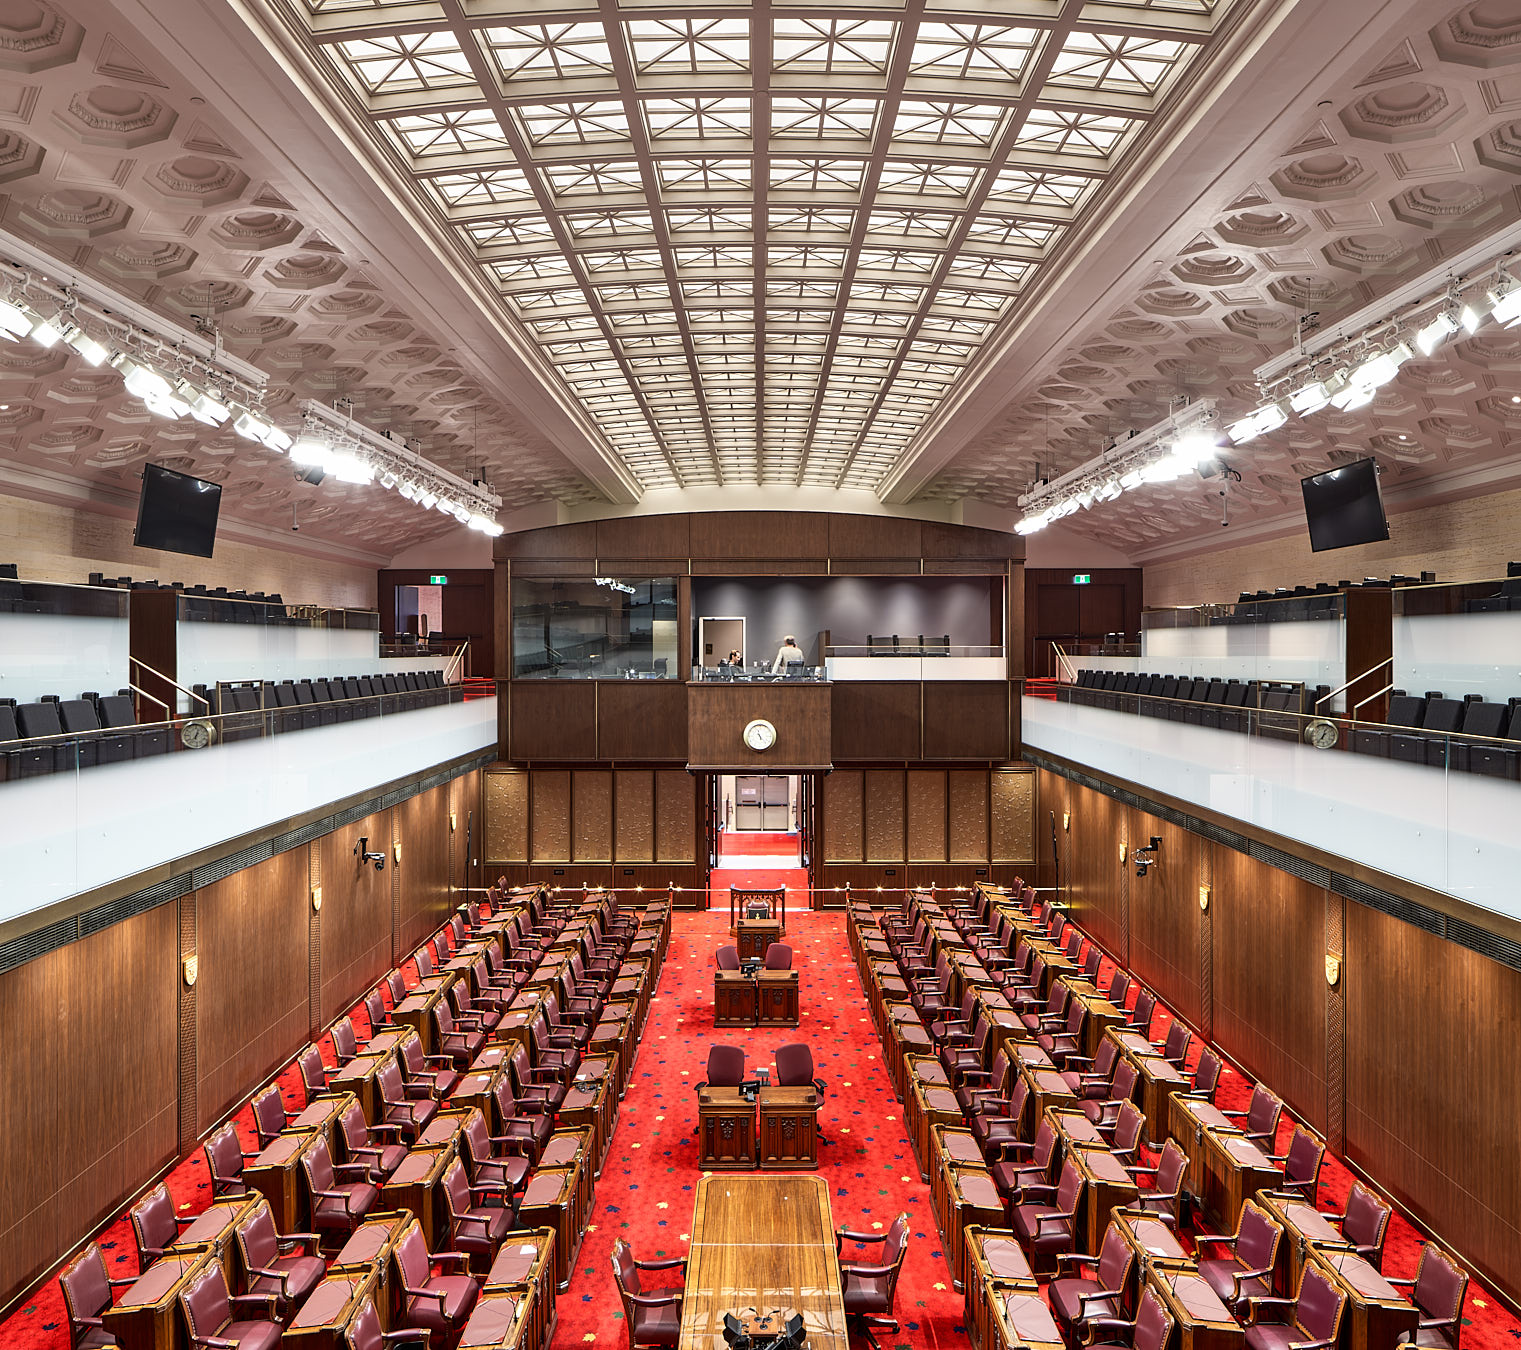 The interior of the Senate of Canada